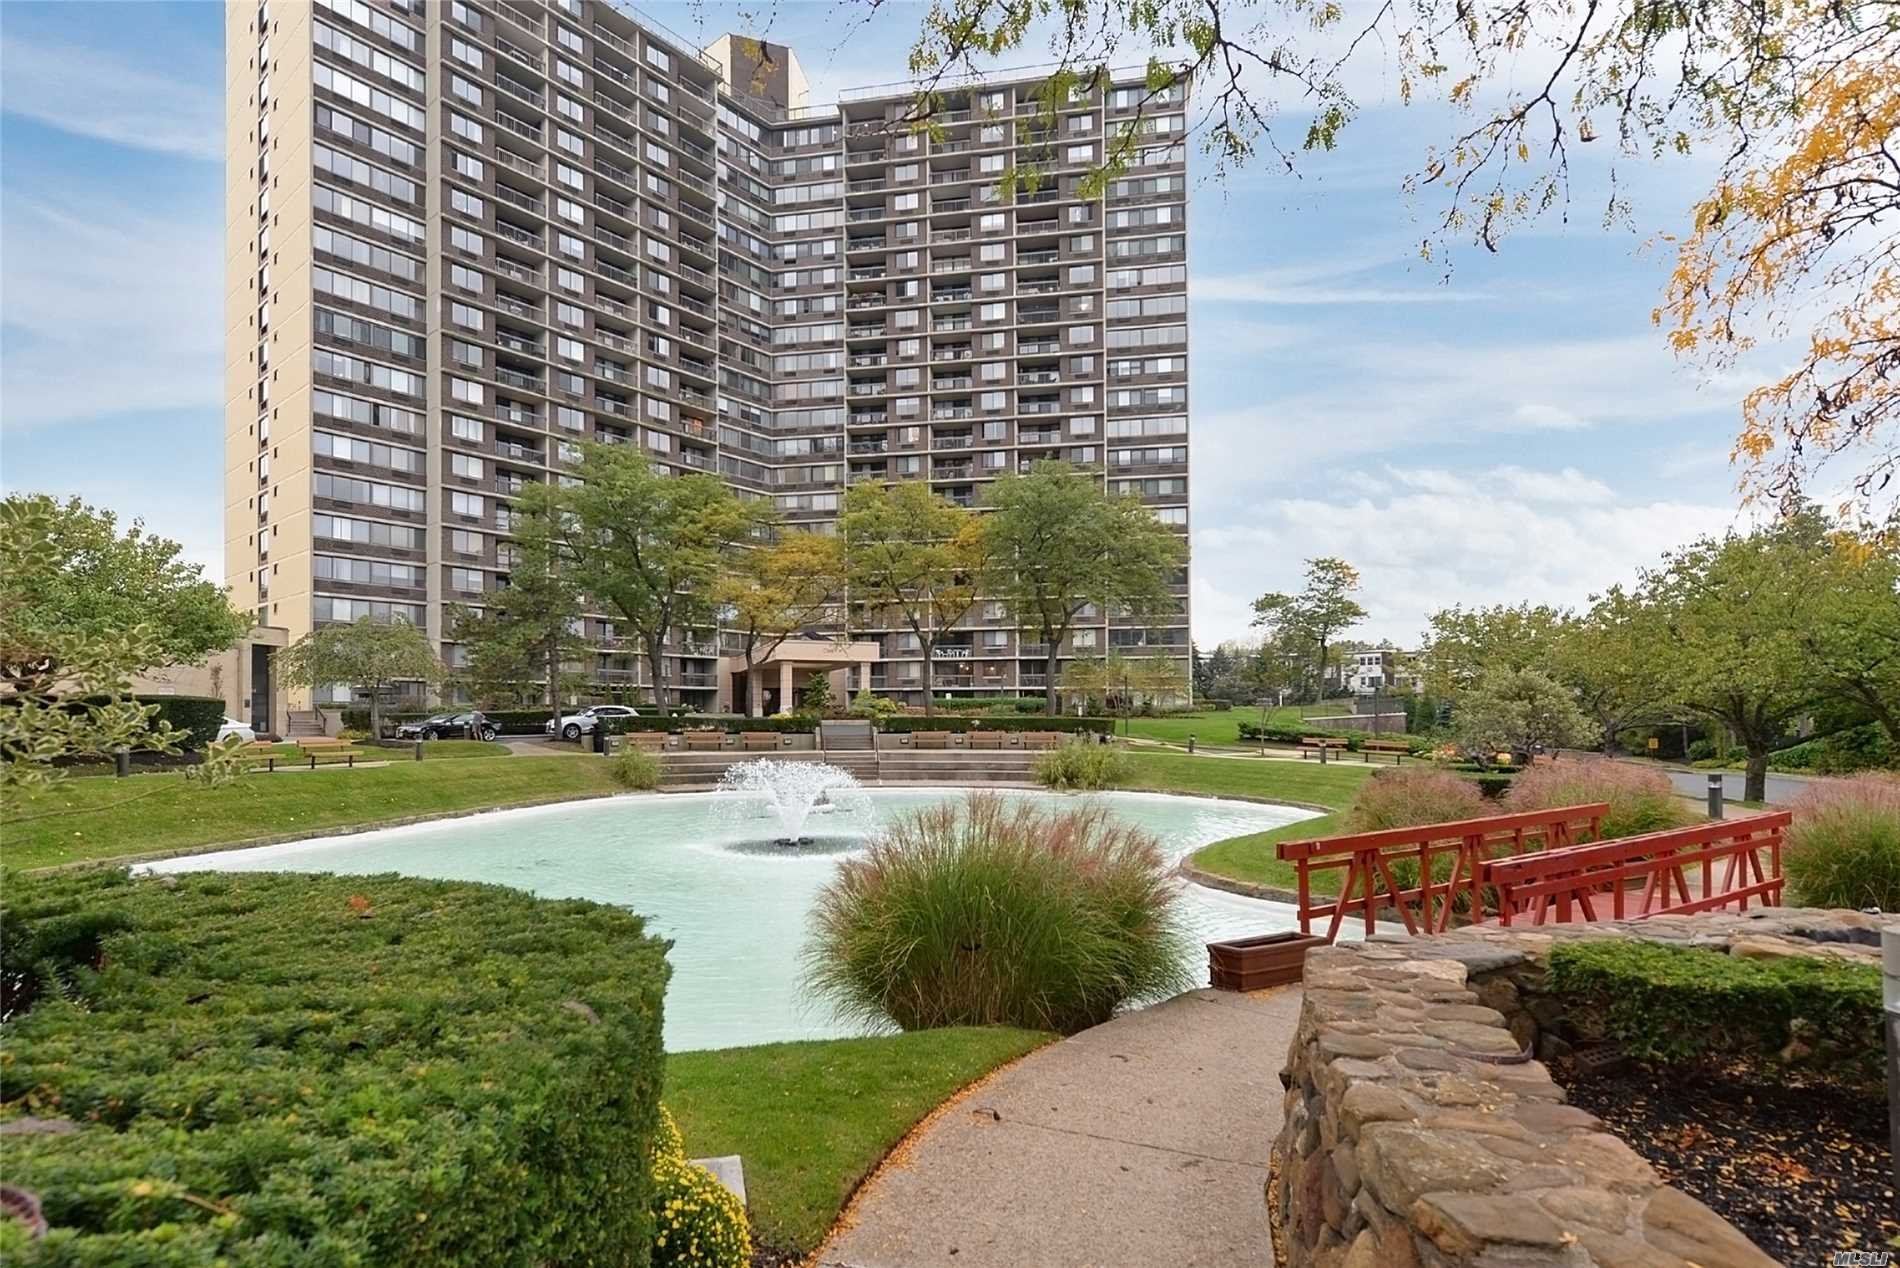 Fabulous Bay Club Gated Community. 24 Hr. Security. Doorman / Concierge. Beautiful Large Studio Unit With New Kitchen Cabinets & Updated Bathroom. New Wood Floor In L/R/ New Tiled Floor In Kitchen.Year Round Swim & Fitness Center, Indoor Parking (Extra Fees). Free Tennis Club. Underground Stores. On Premises Restaurant. Best Location ..... Near Everything.